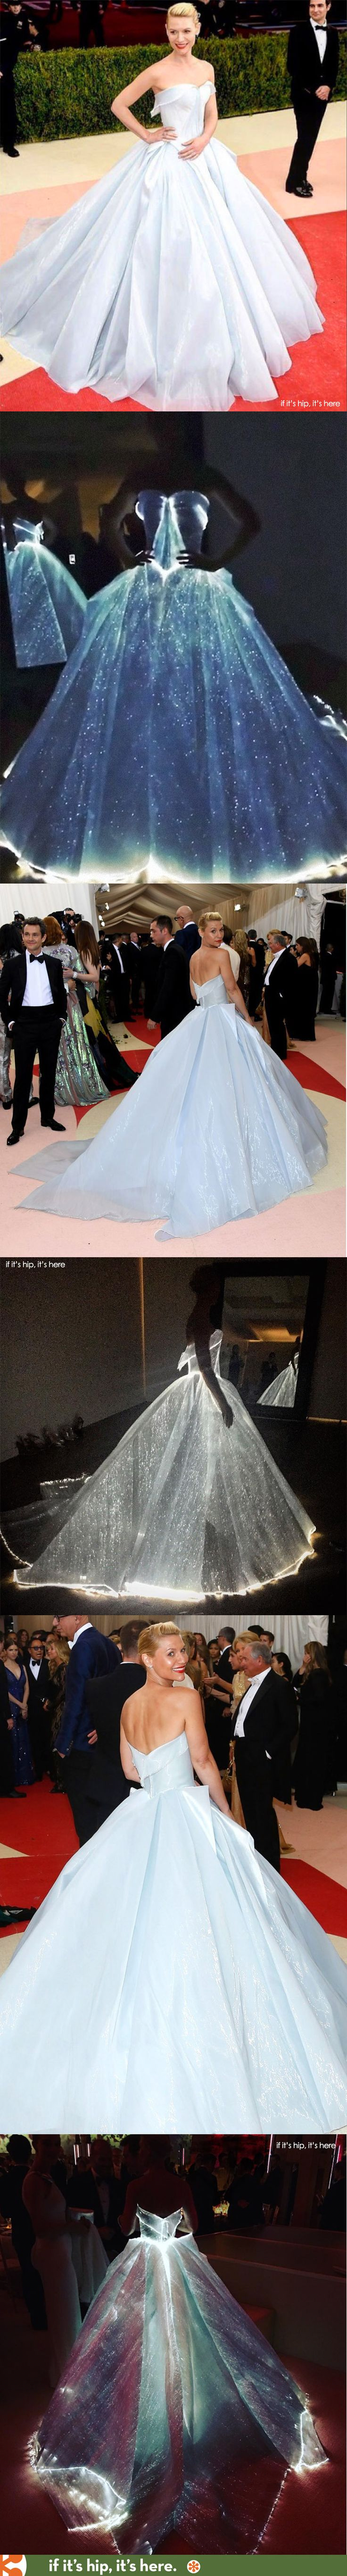 While Clare Danes' pale blue Zac Posen ballgown worn to the 2016 Met Gala at first seemed tame, she proved to light up the place when we realized it glowed in the dark.